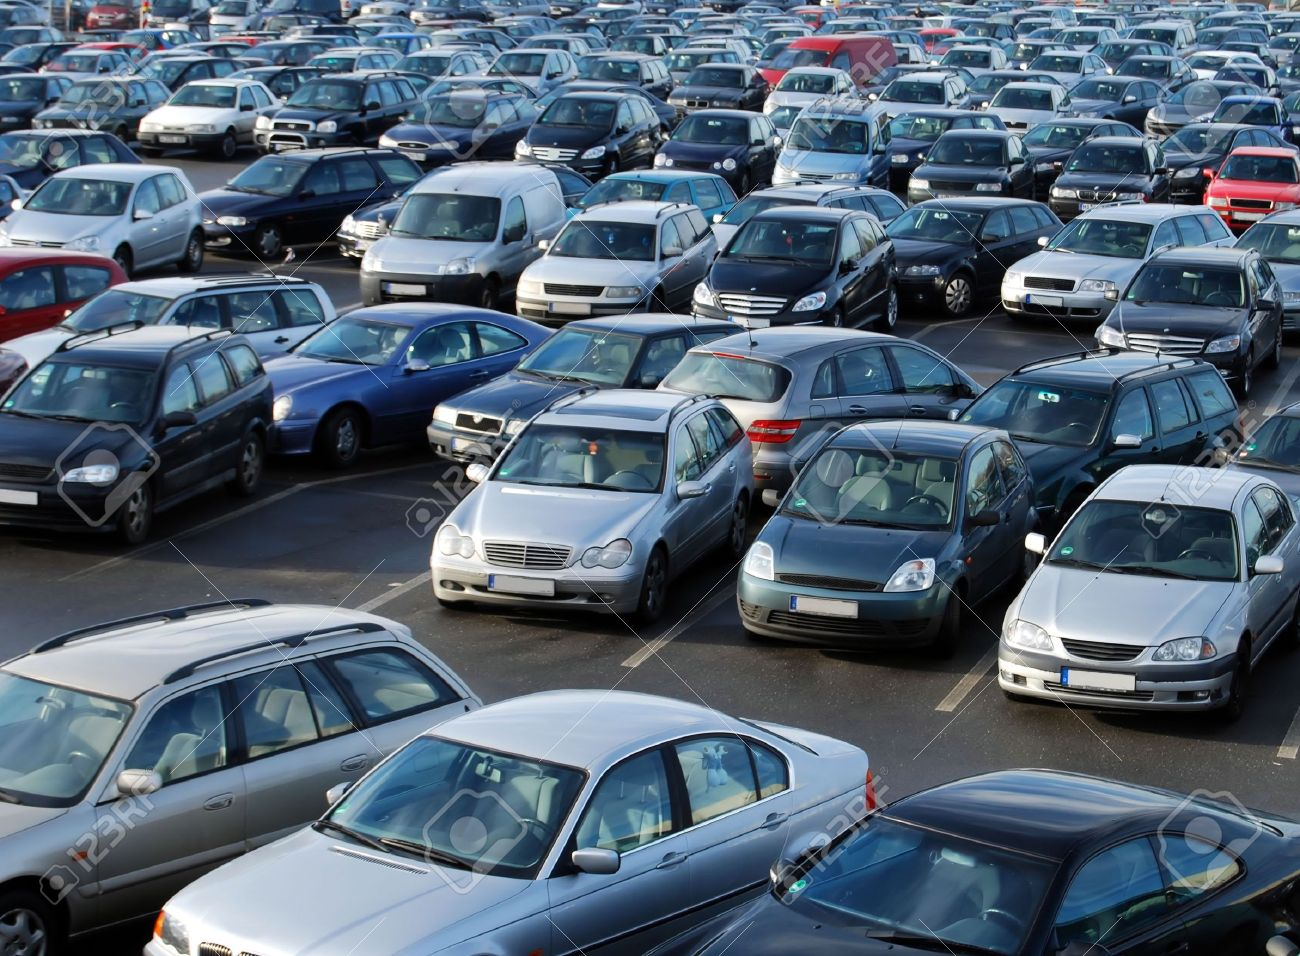 Cars on a parking lot in Germany Stock Photo - 5335074